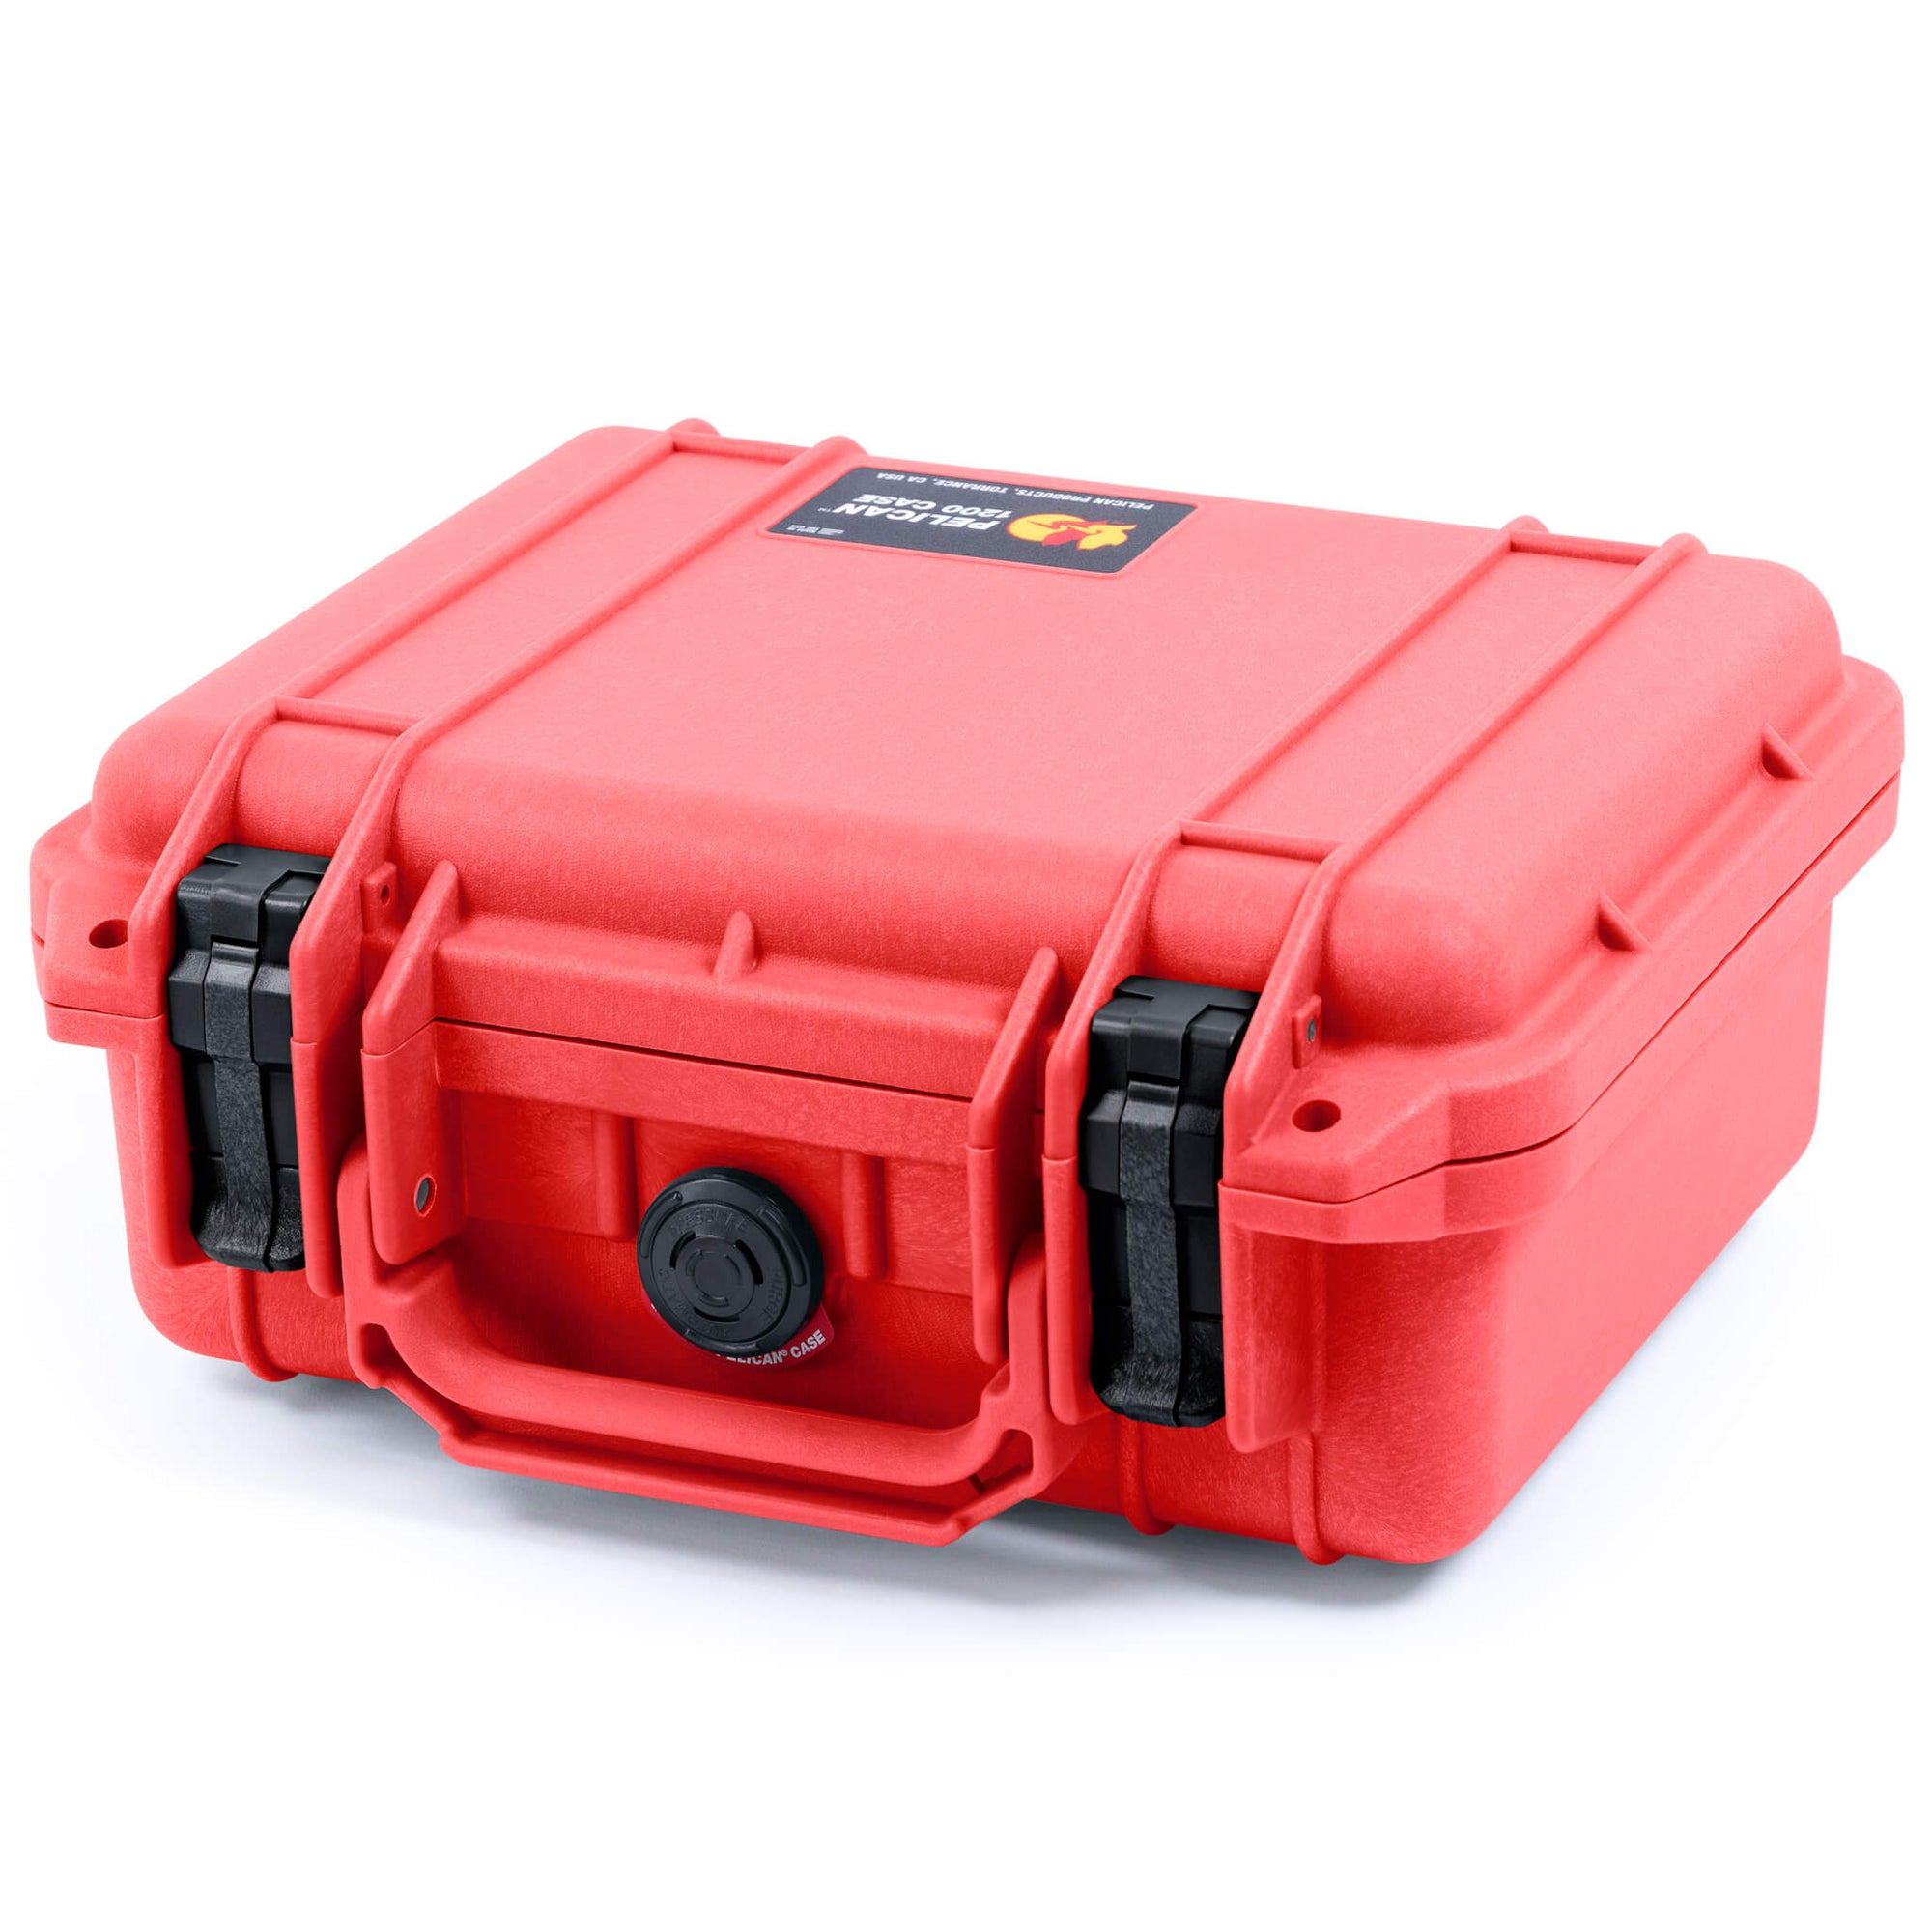 Pelican 1200 Case, Red with Black Handle & Latches - Pelican Color Case